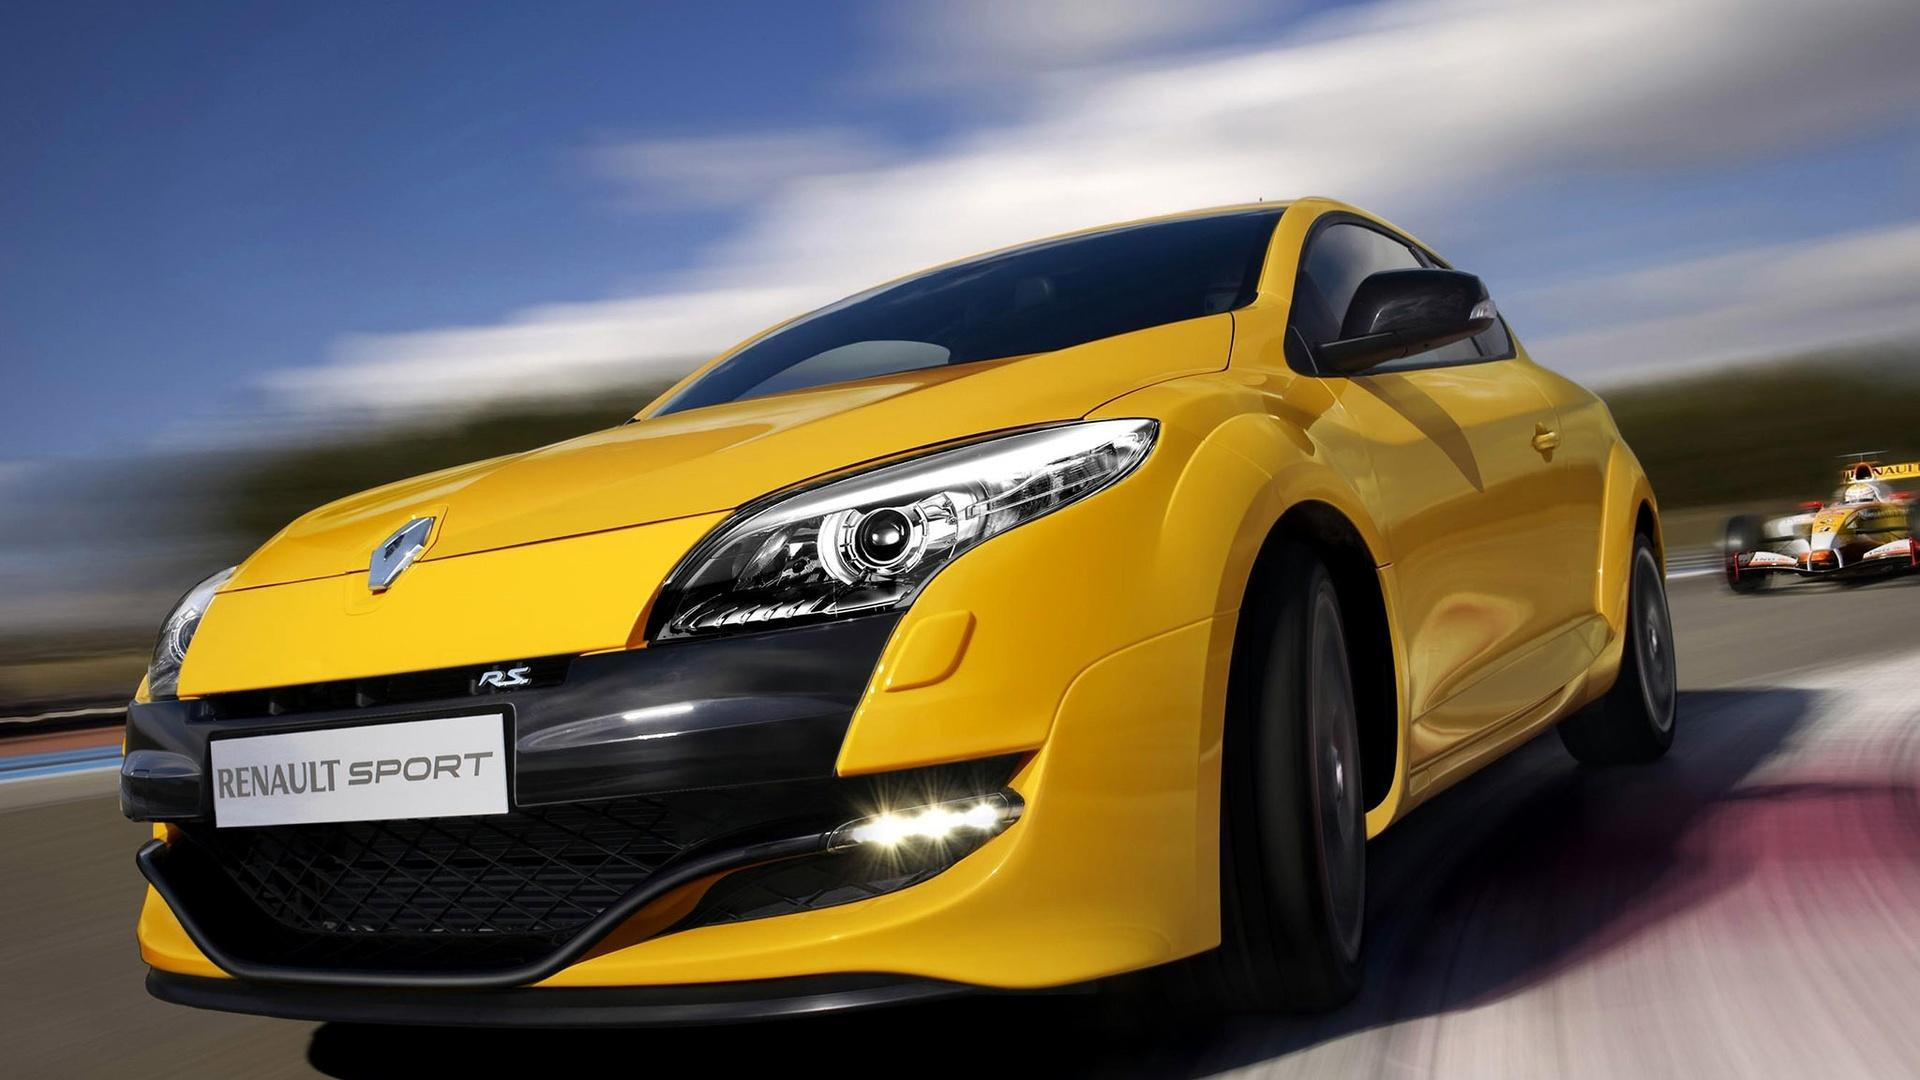 Free 1920x1080 Megane Renault Sport Car Wallpapers Full HD 1080p